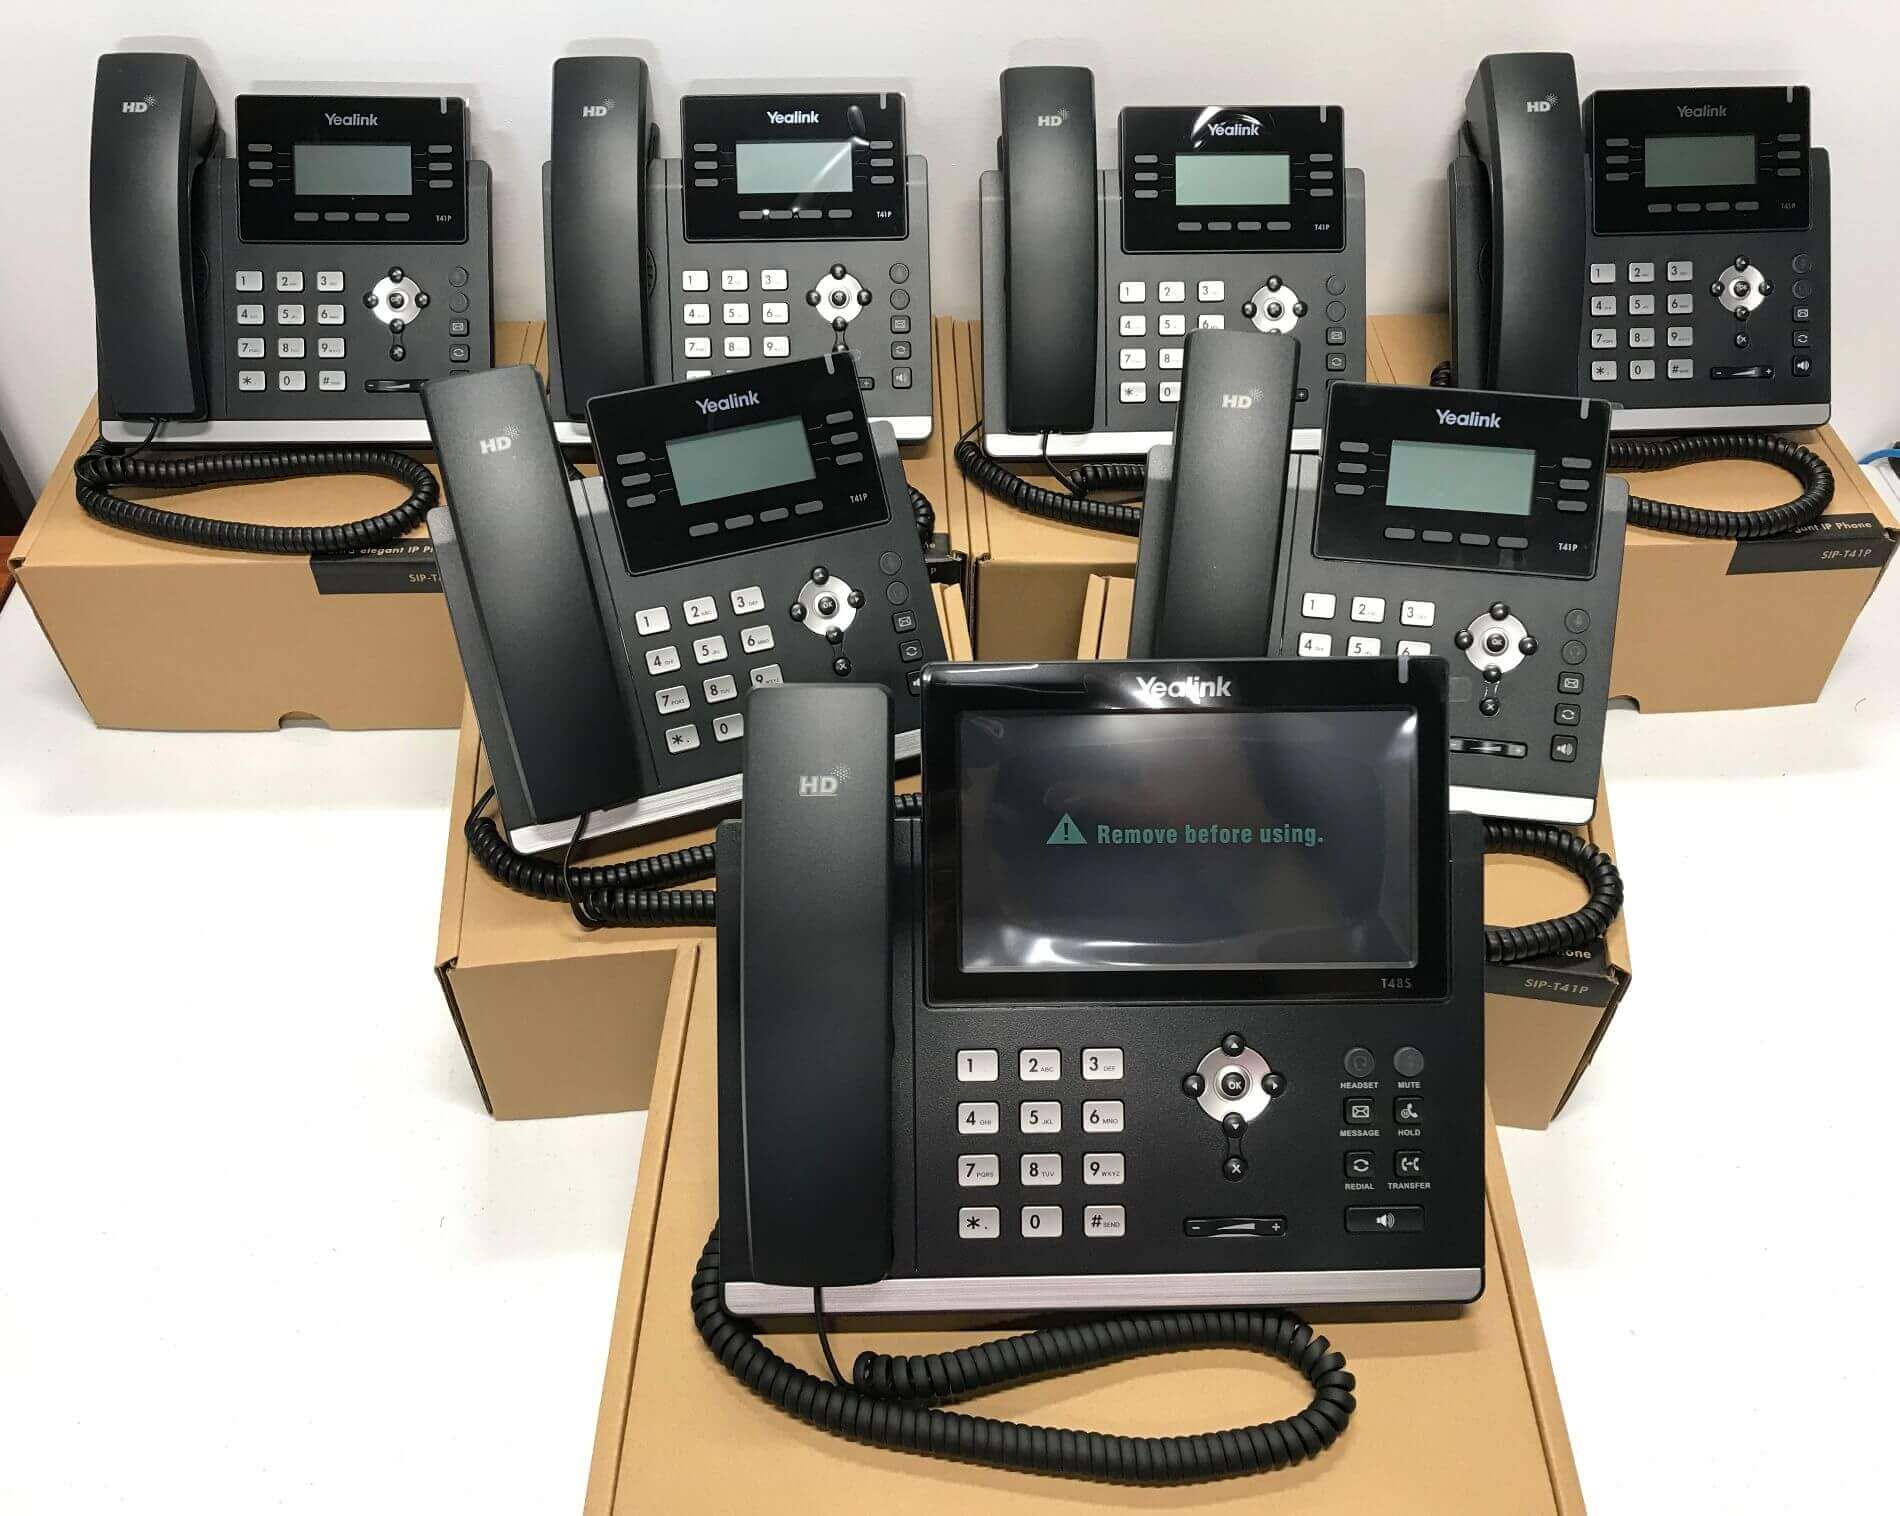 Cloud Hosted Phone System with 7 Yealink handsets